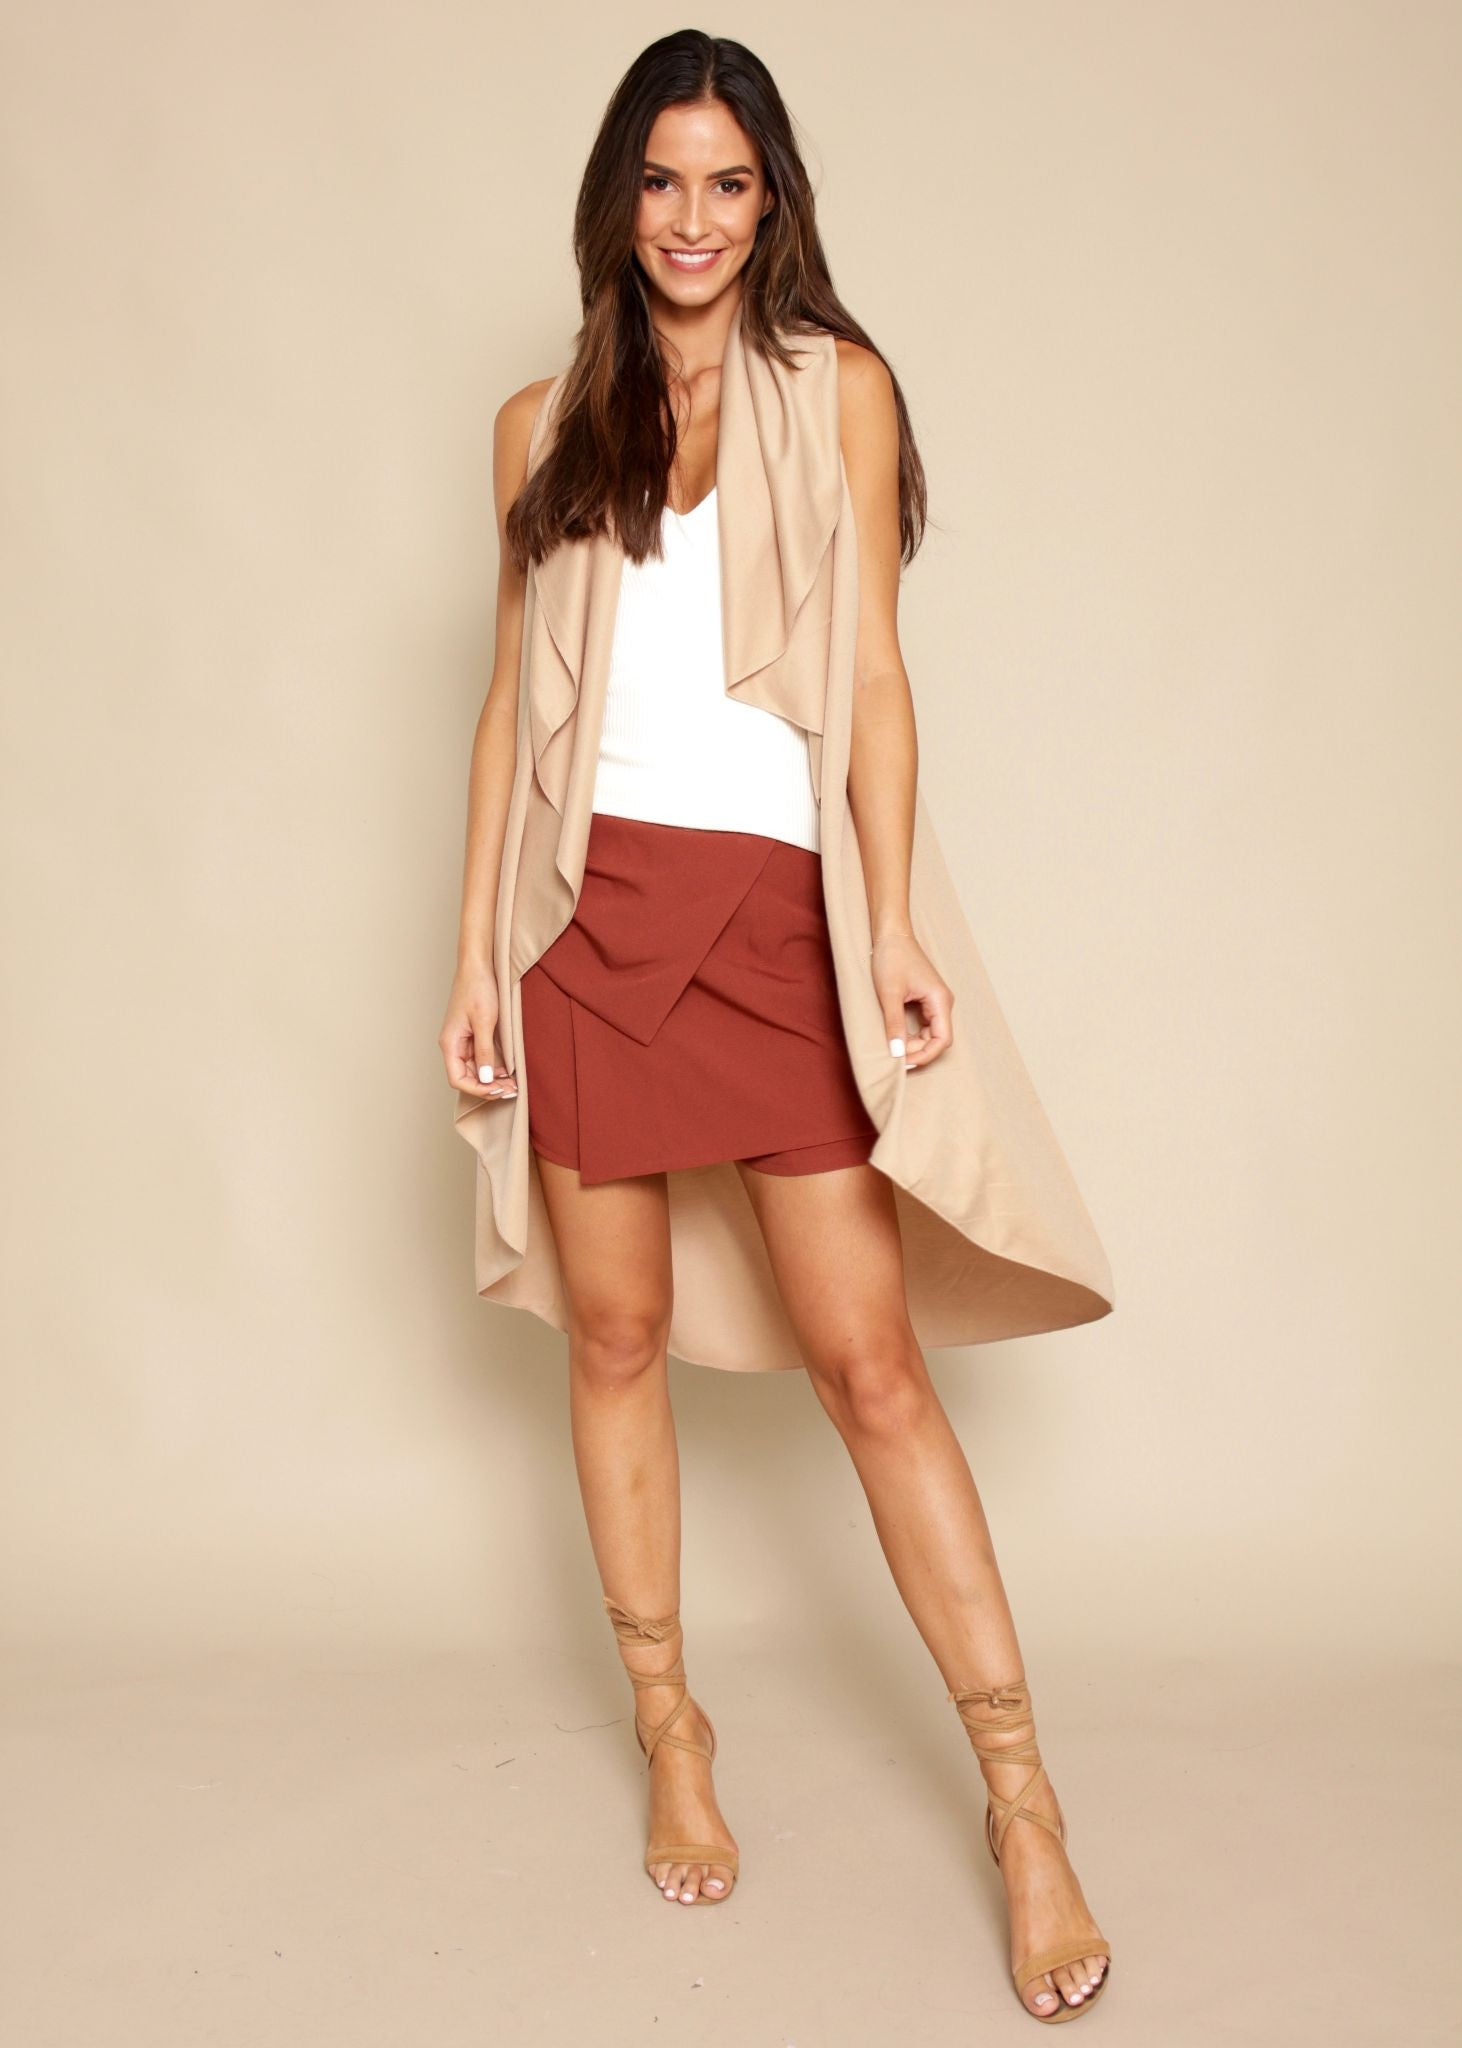 Bright Lights Sleeveless Cape - Camel